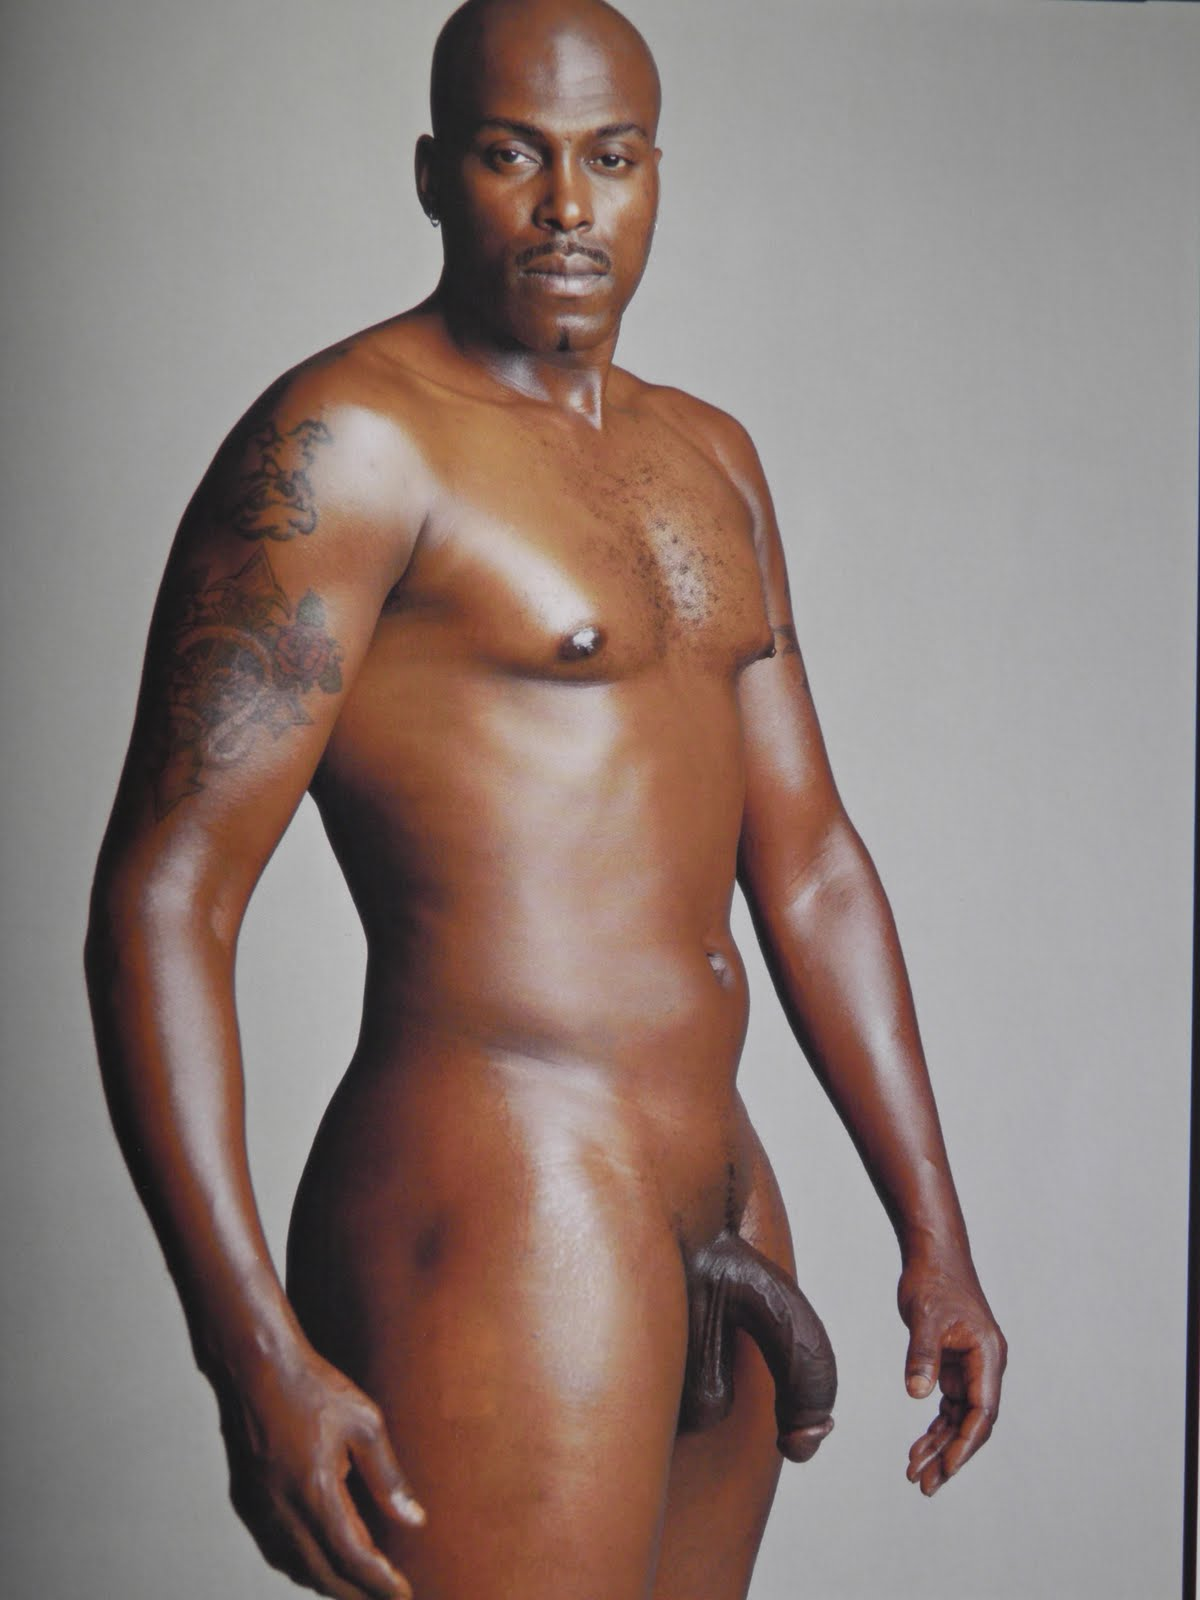 Lexington Steele Gay